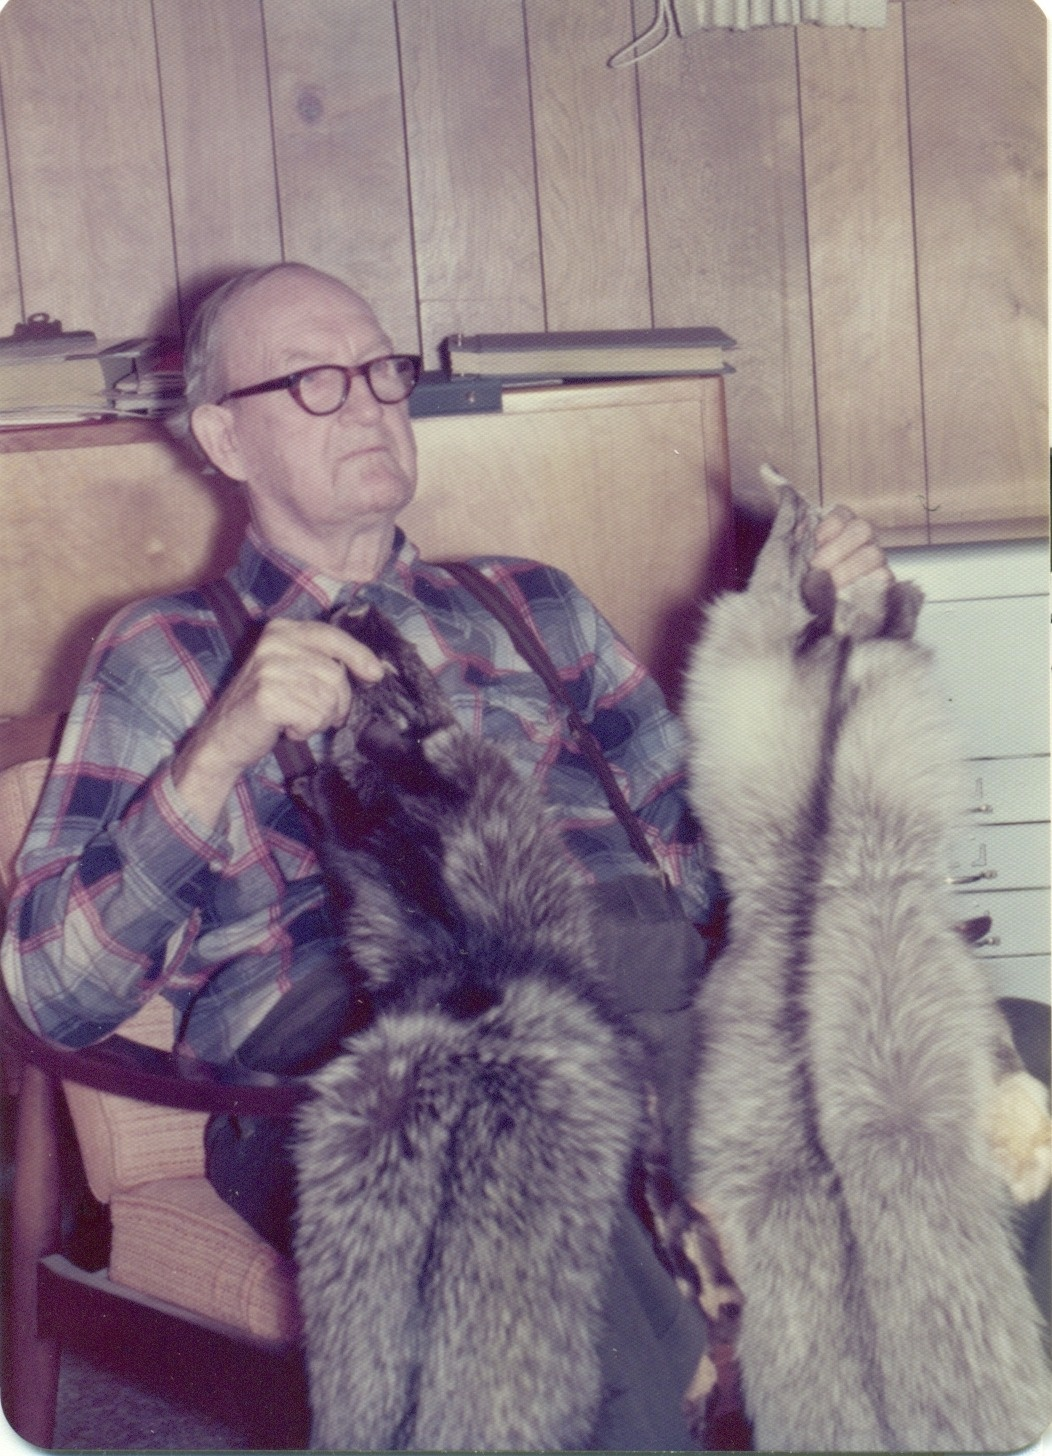 """(Grandfather) Harry Magnuson. (Approximately) 1976. Ogema, WI                                0     false             18 pt     18 pt     0     0         false     false     false                                                          /* Style Definitions */ table.MsoNormalTable {mso-style-name:""""Table Normal""""; mso-tstyle-rowband-size:0; mso-tstyle-colband-size:0; mso-style-noshow:yes; mso-style-parent:""""""""; mso-padding-alt:0in 5.4pt 0in 5.4pt; mso-para-margin:0in; mso-para-margin-bottom:.0001pt; mso-pagination:widow-orphan; font-size:12.0pt; font-family:""""Times New Roman""""; mso-ascii-font-family:Cambria; mso-ascii-theme-font:minor-latin; mso-hansi-font-family:Cambria; mso-hansi-theme-font:minor-latin;}"""